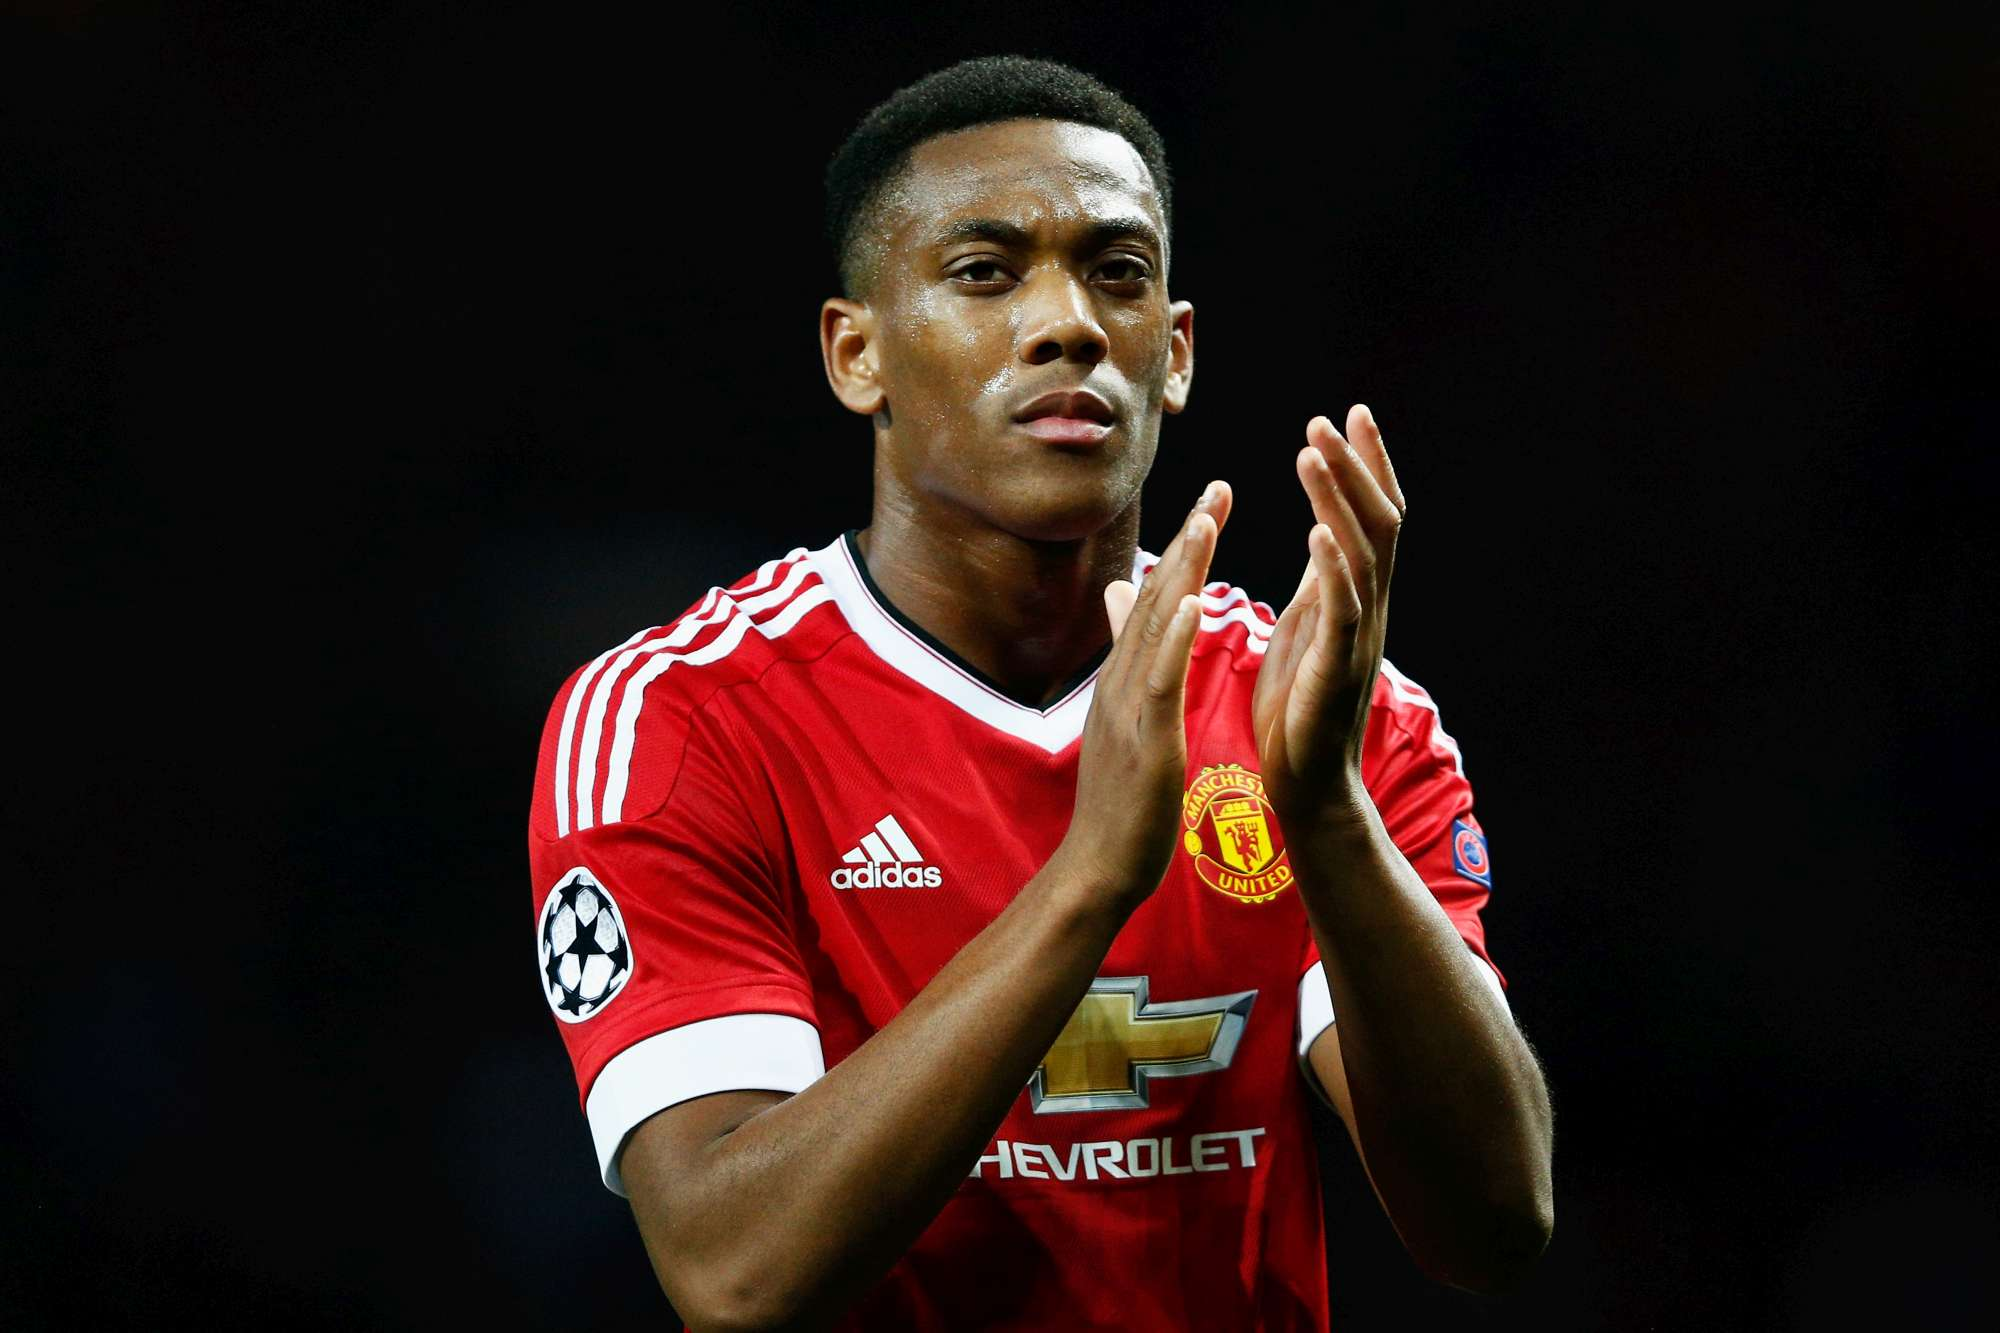 Martial, in estate lo United ha speso 60 milioni per averlo